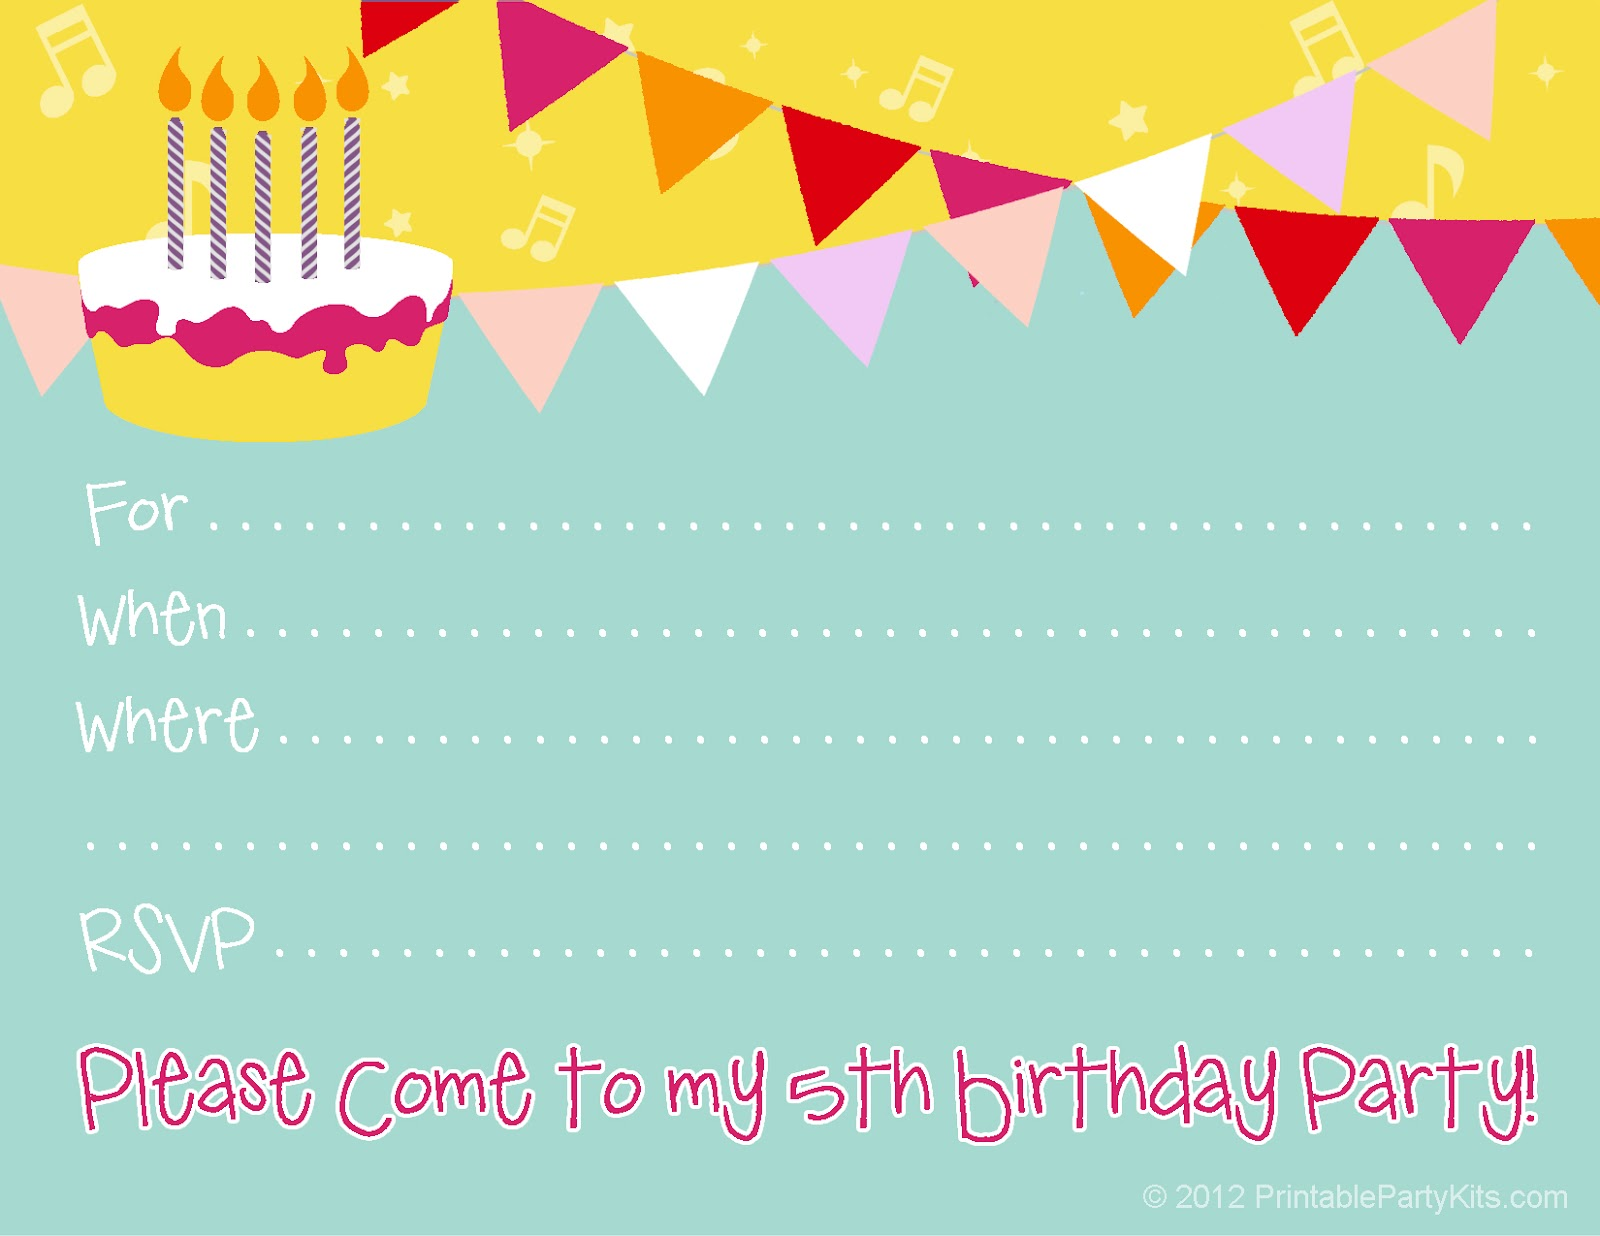 Birthday party invitation free template juvecenitdelacabrera birthday party invitation free template stopboris Gallery